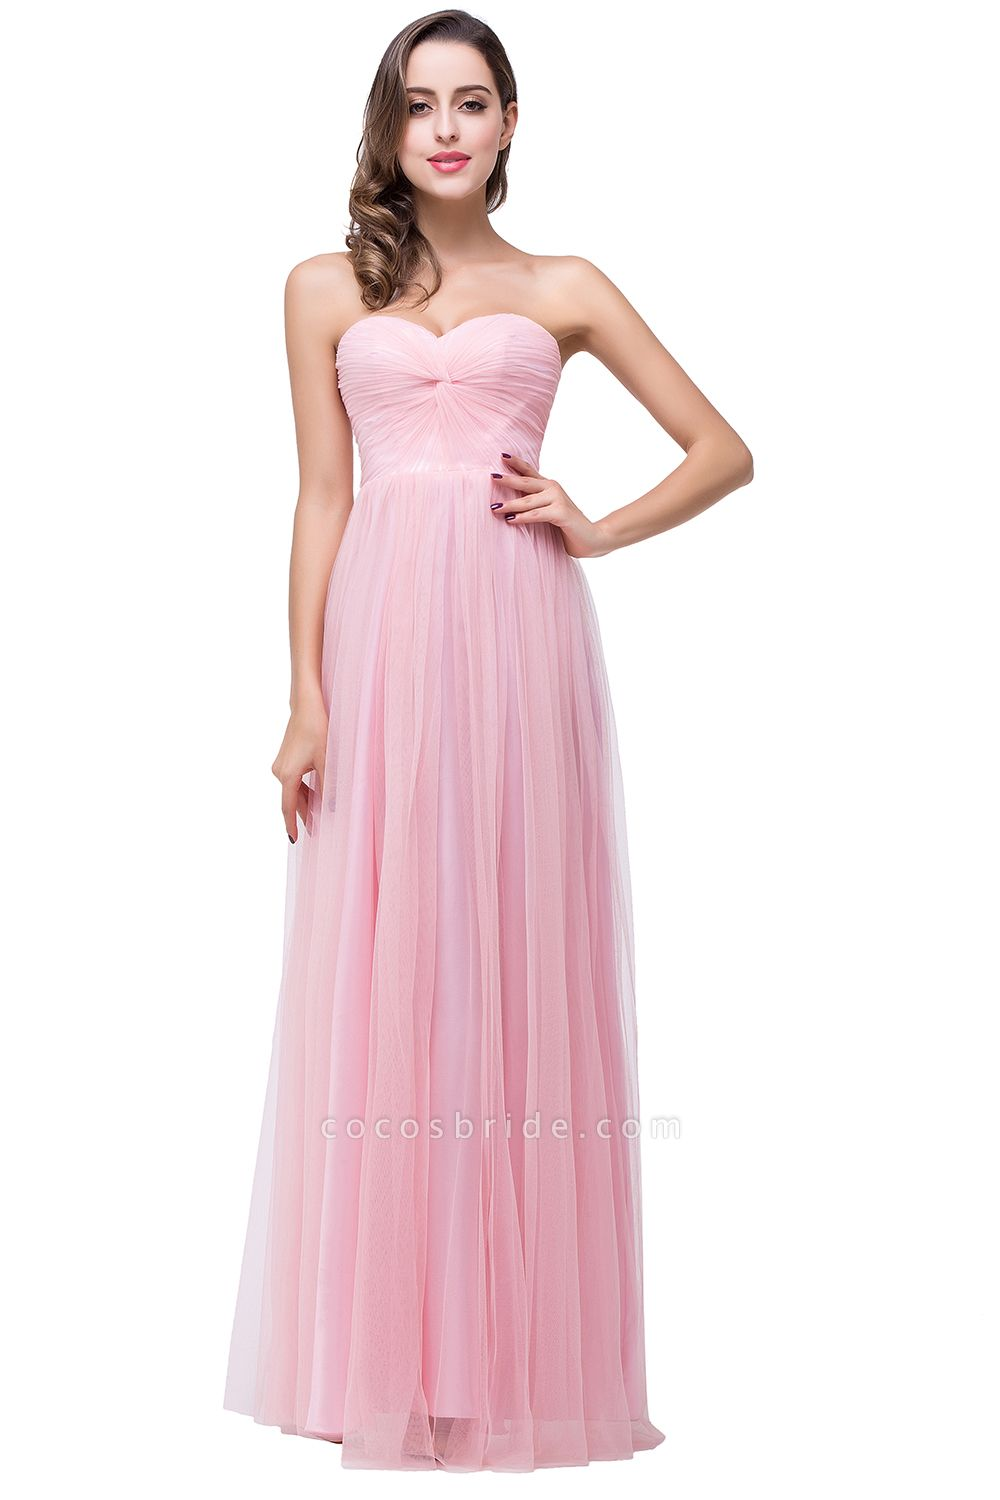 Glorious Strapless Tulle A-line Bridesmaid Dress